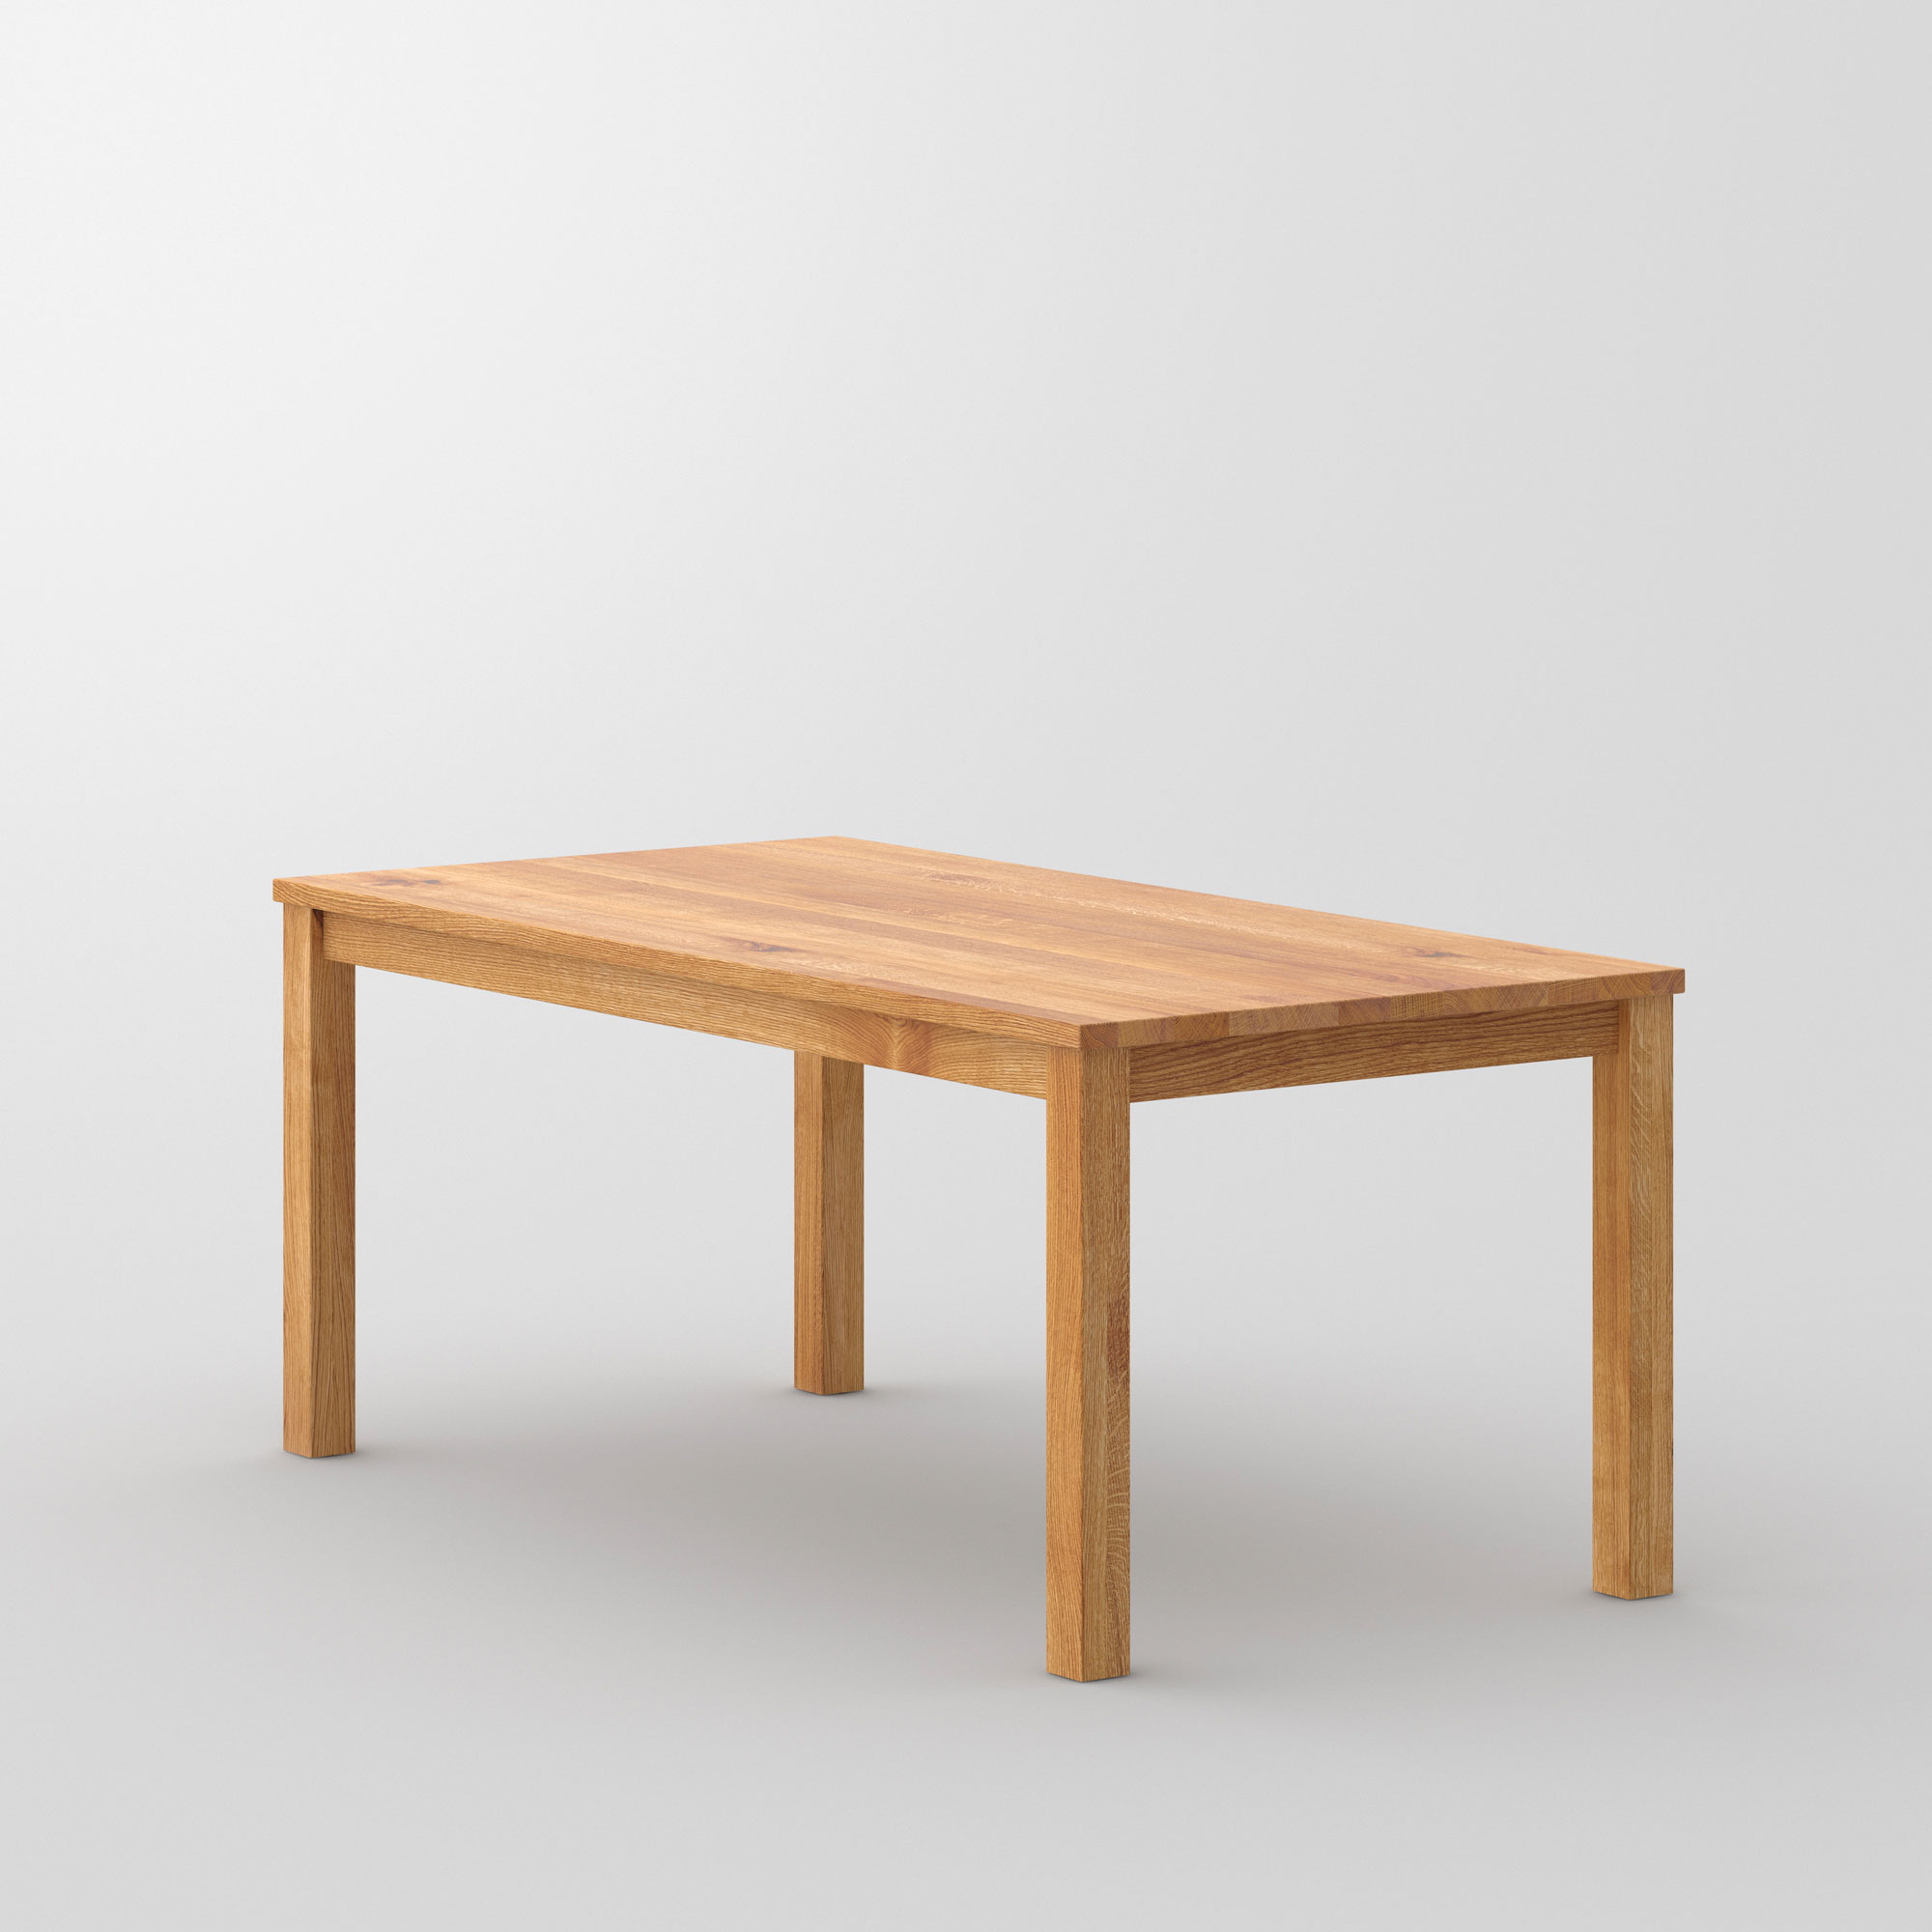 Custom-Made Solid Wood Table FORTE 3 B7X7 cam3 custom made in solid wood by vitamin design